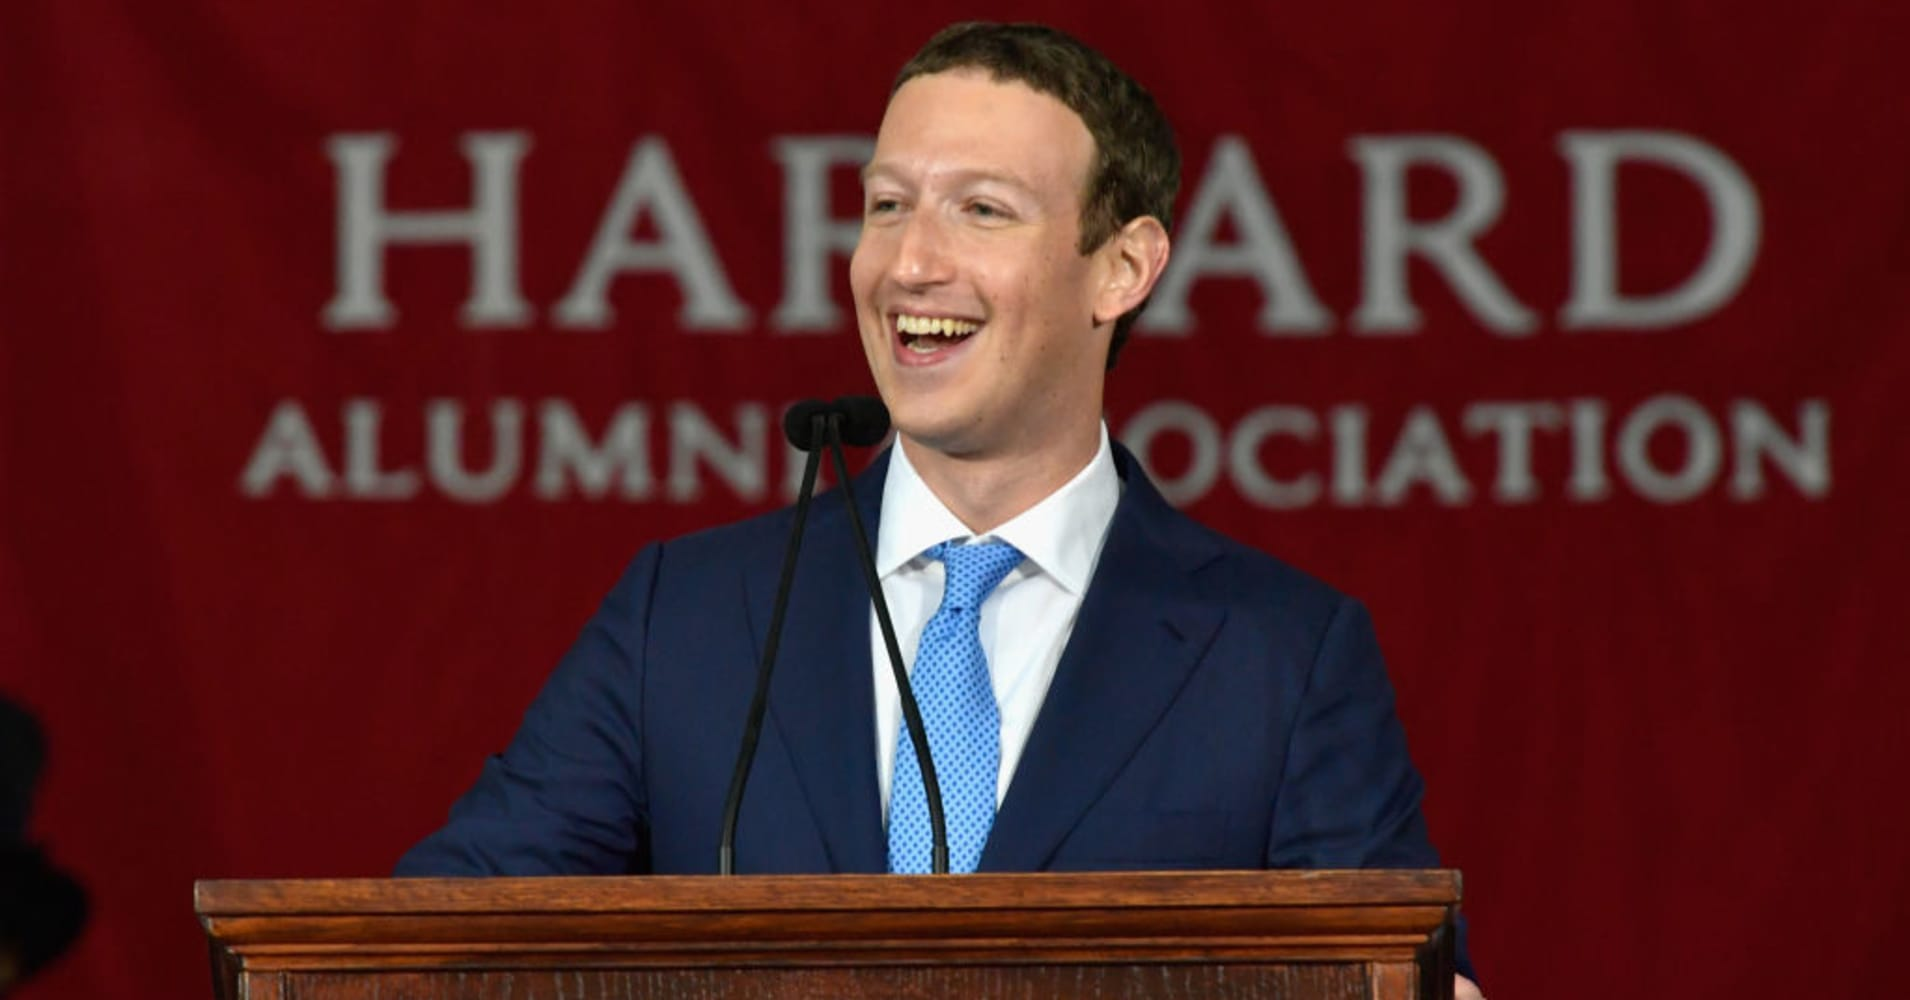 Facebook Founder and CEO Mark Zuckerberg delivers the commencement address at Harvard's 366th commencement.